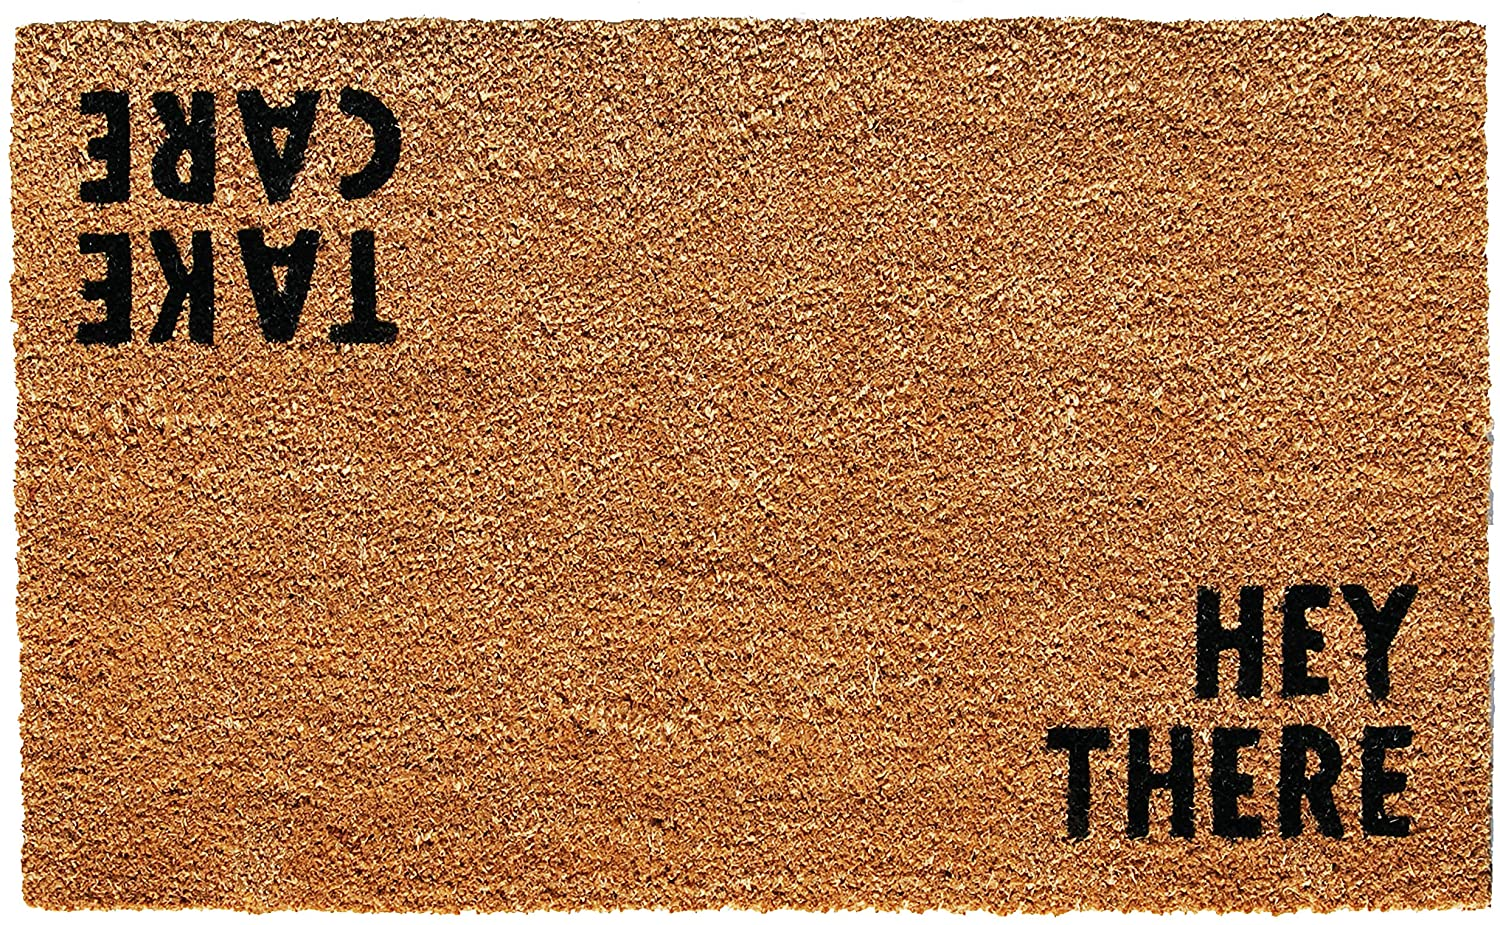 Calloway Mills 100511729 Hey There Doormat, 17 x 29, Natural/Black